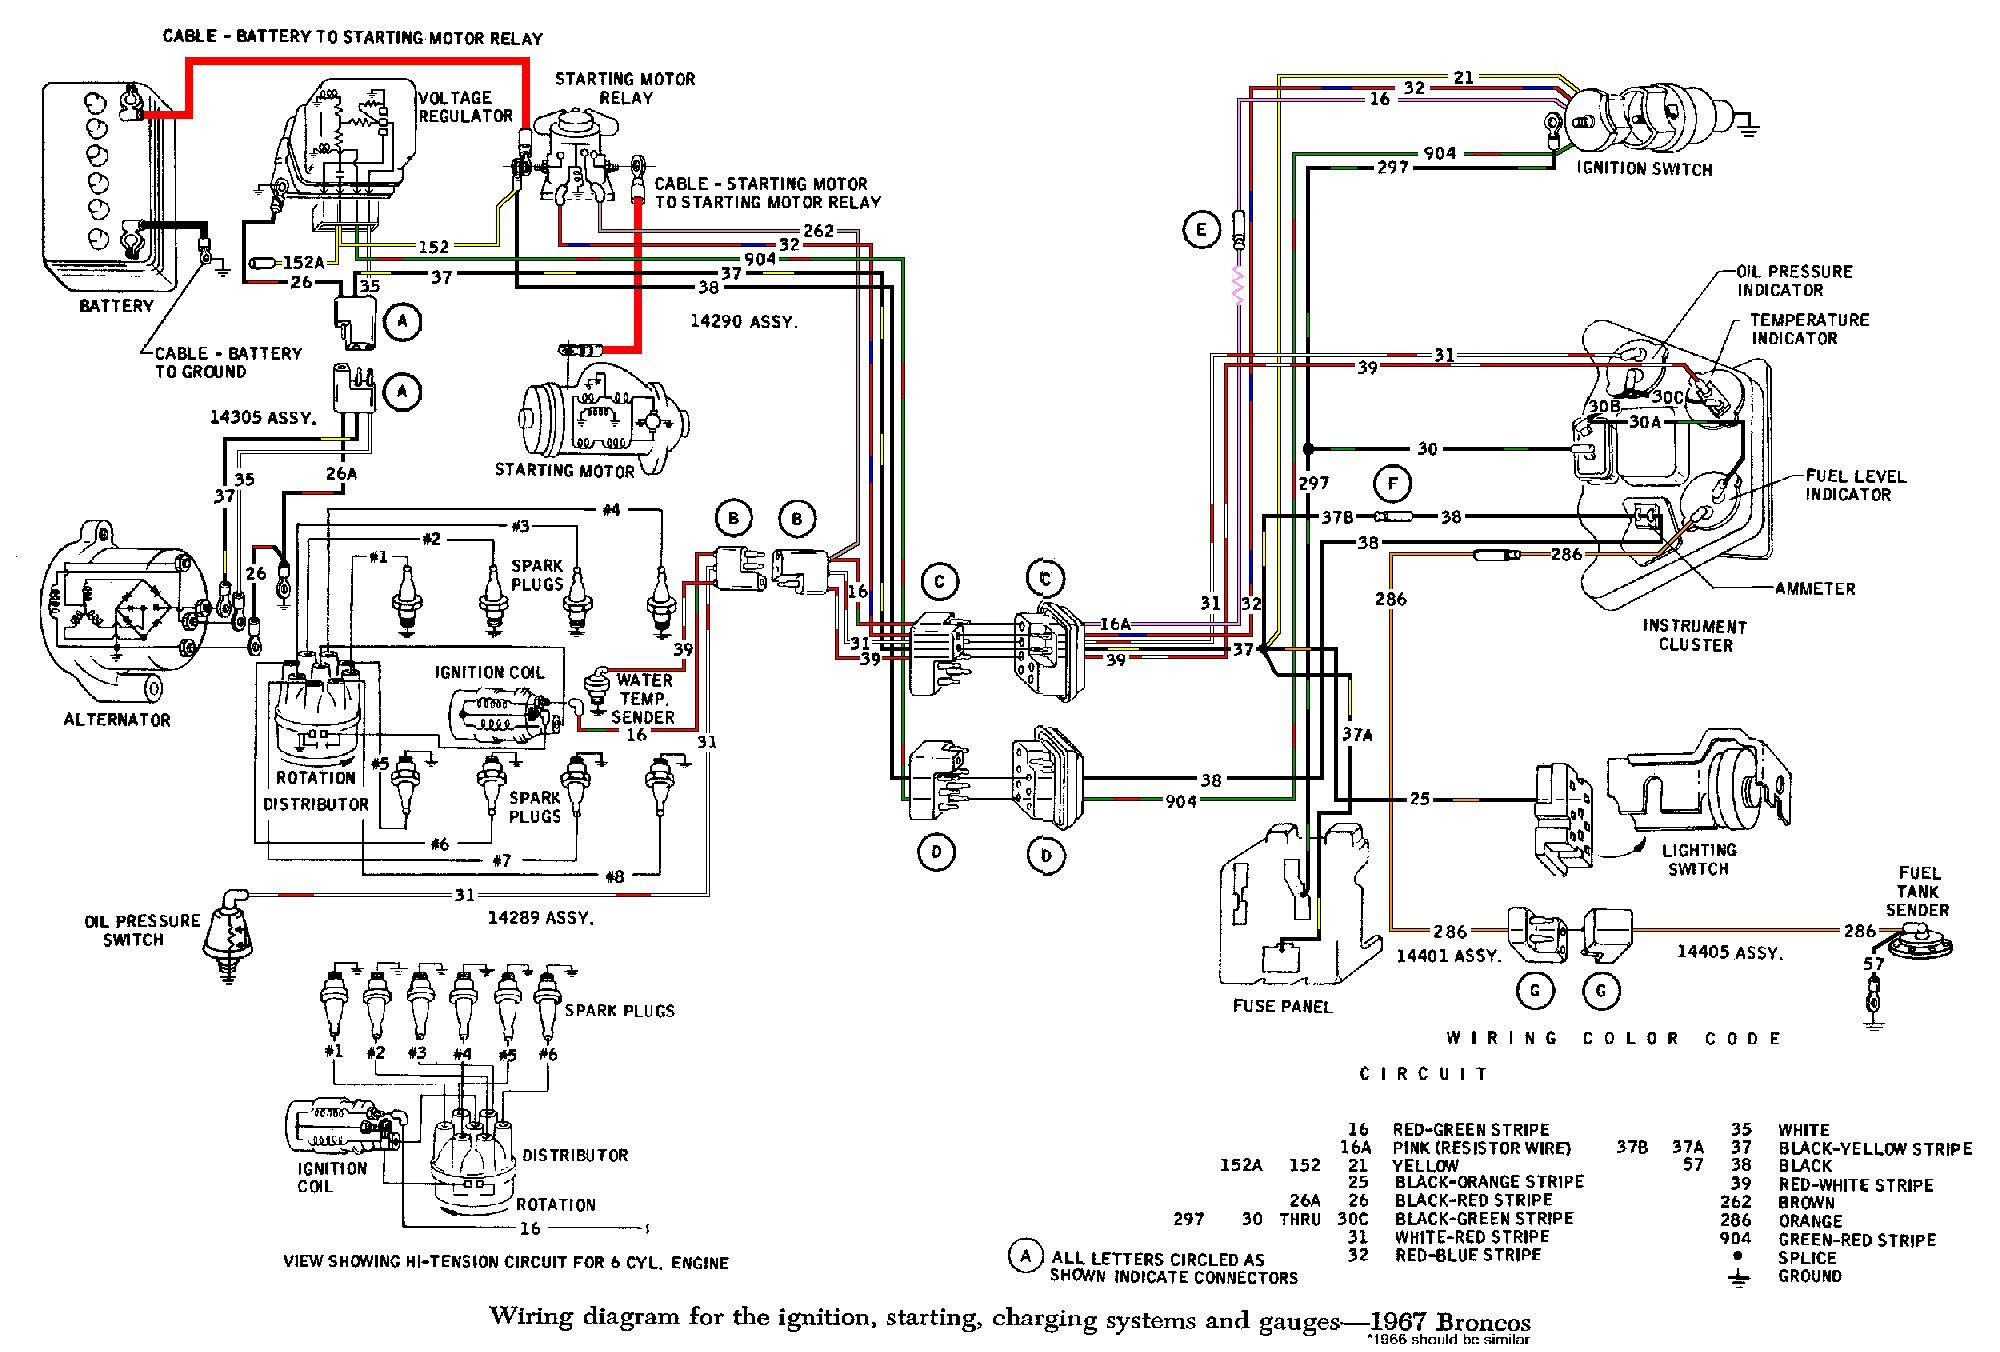 jvc kd x330bts wiring diagram Collection-wiring diagram for jvc car stereo best fresh jvc kd sr72 wiring rh eugrab 18-q